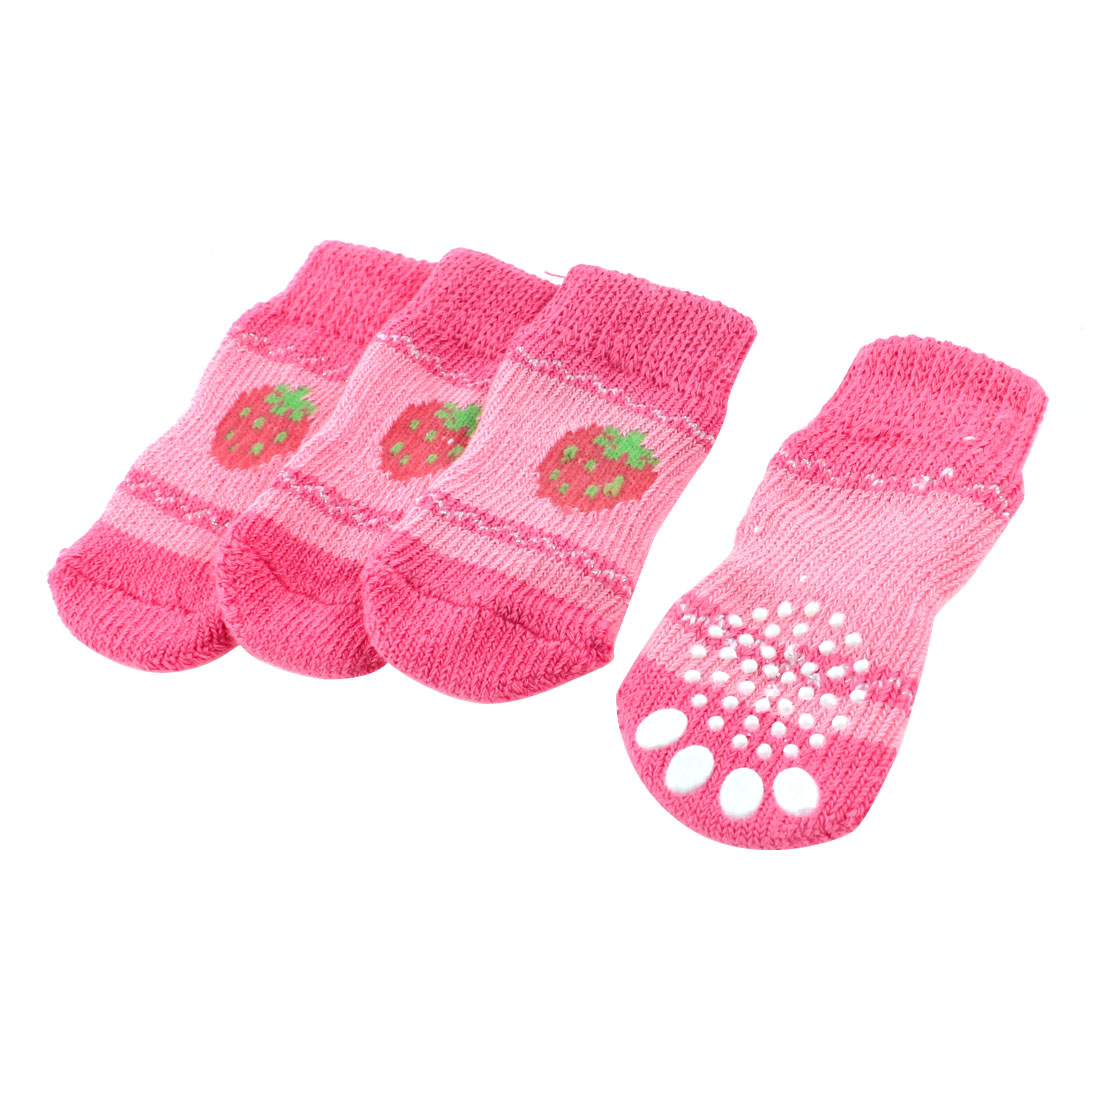 2 Pairs Pink Hand Knit Strawberry Pattern Elastic Nonslip Pet Dog Doggy Socks M